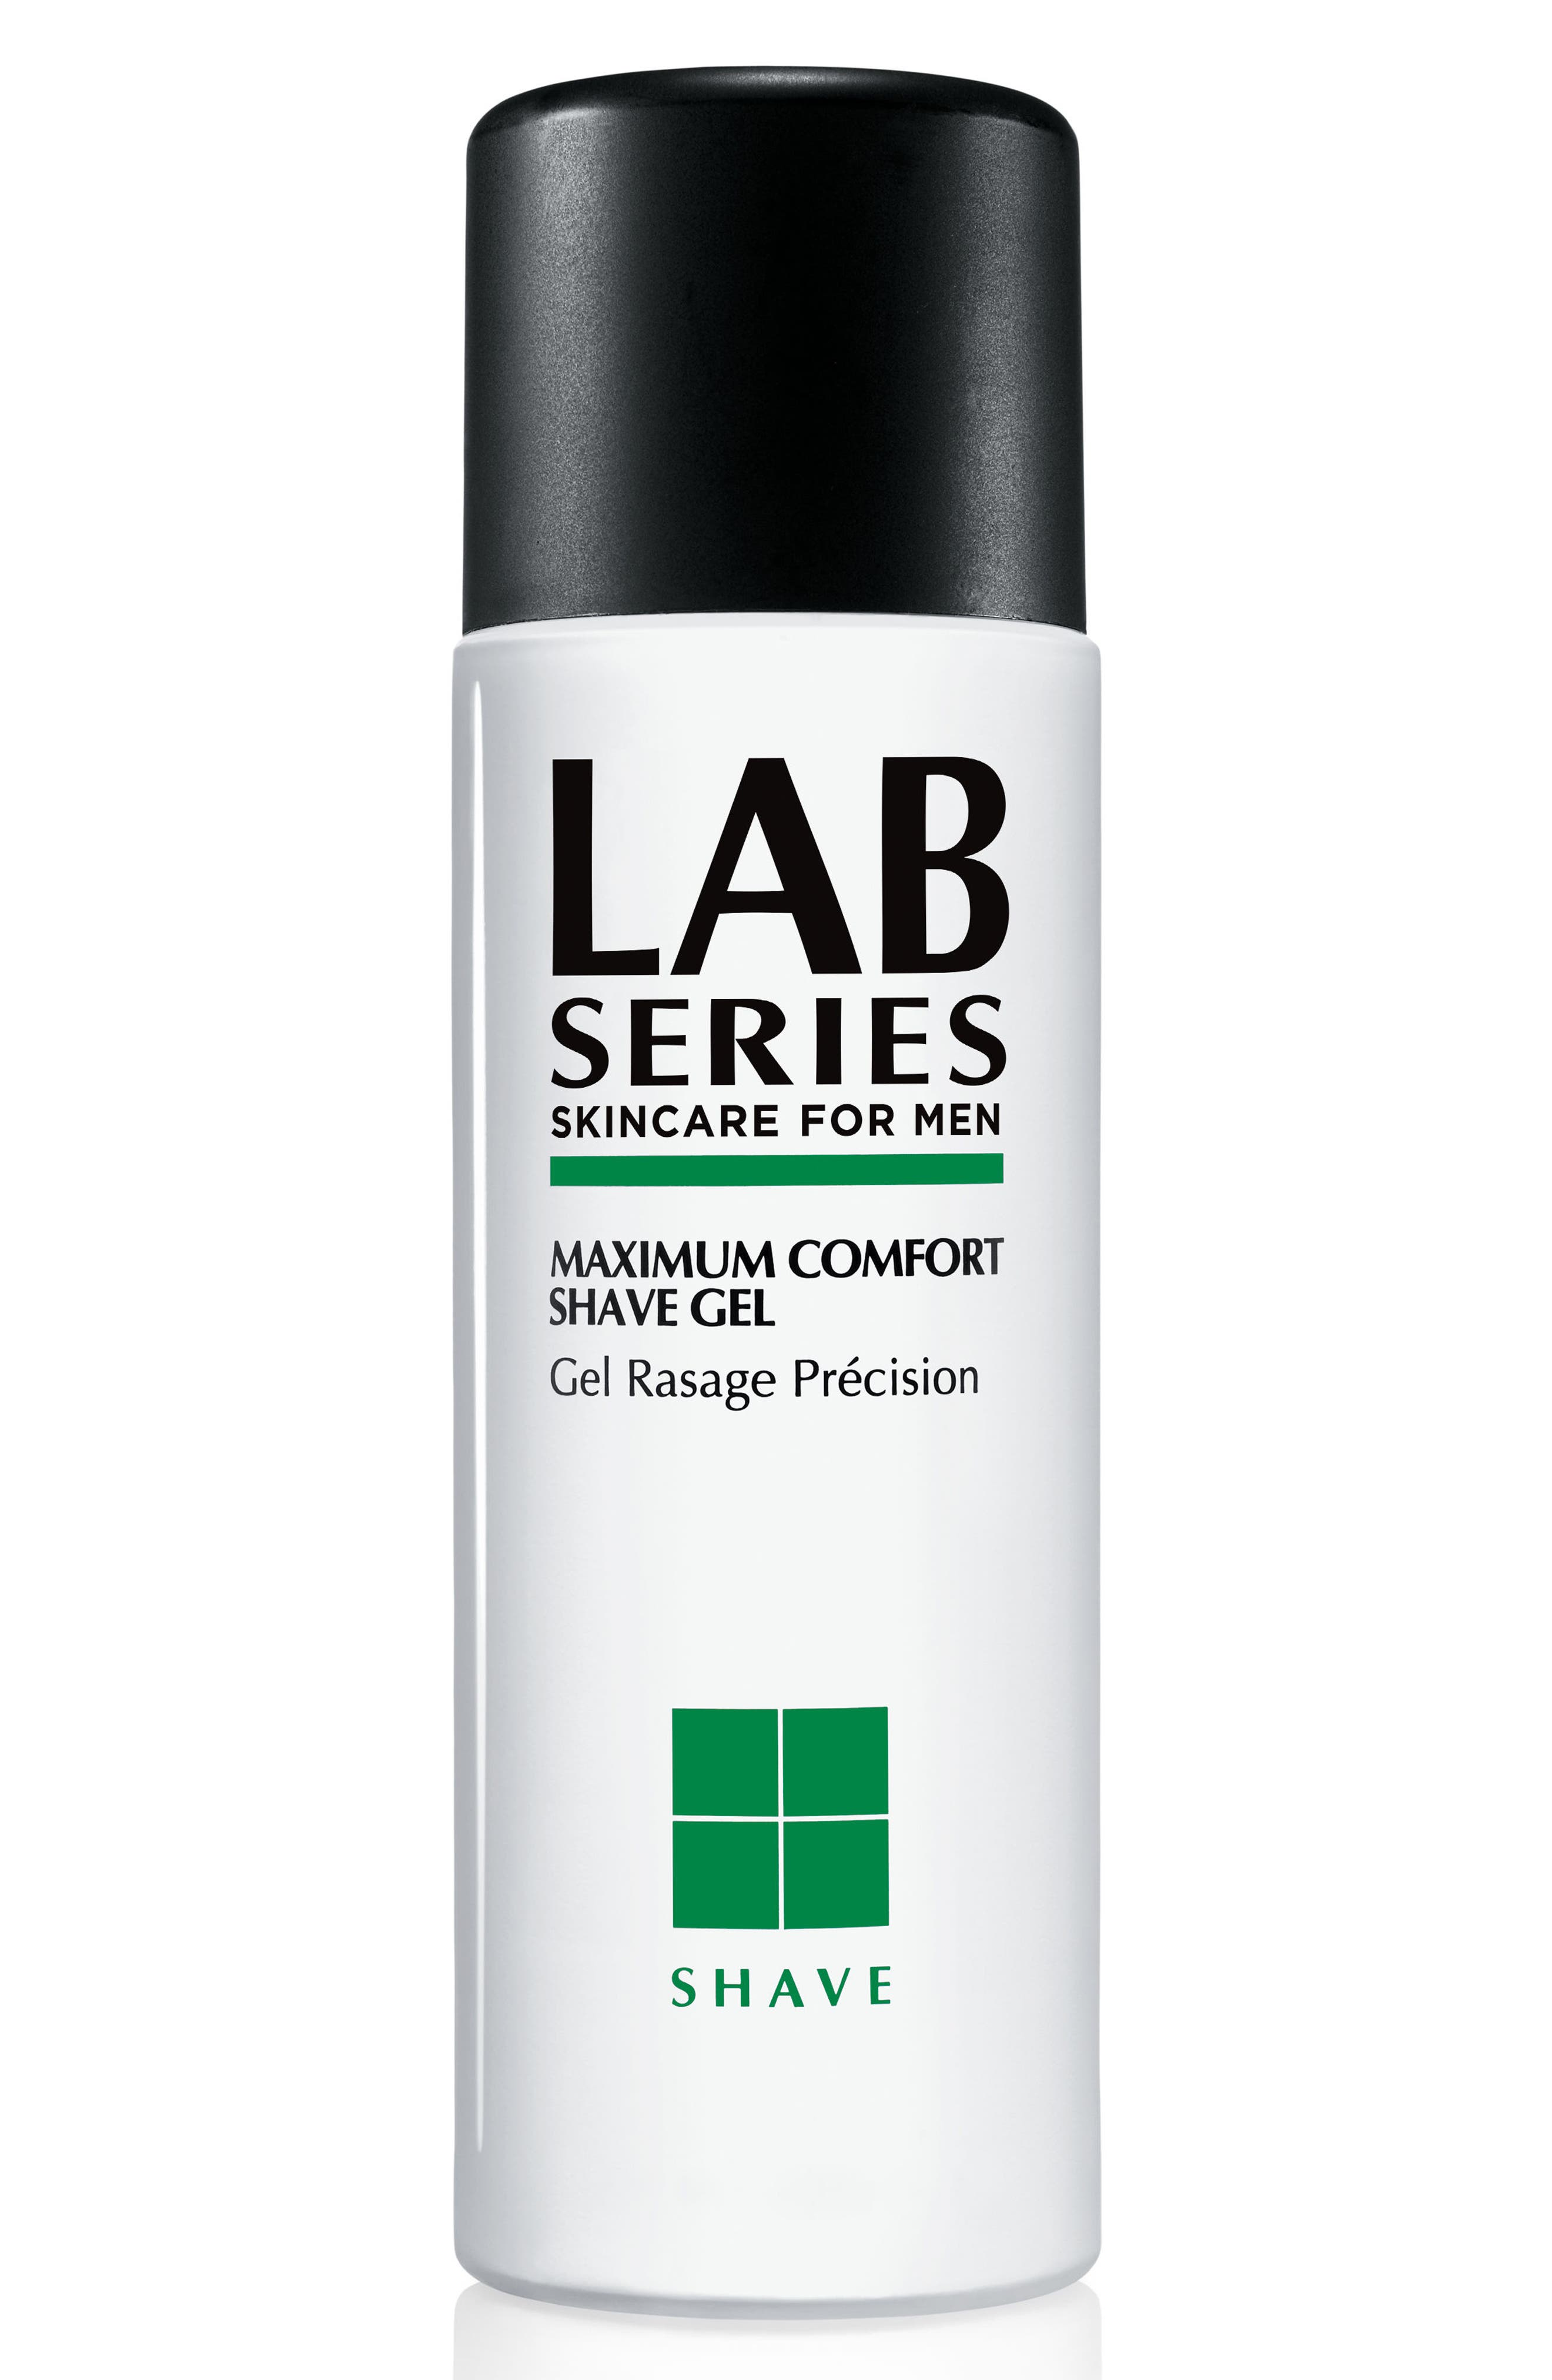 Lab Series Skincare for Men Maximum Comfort Shave Gel